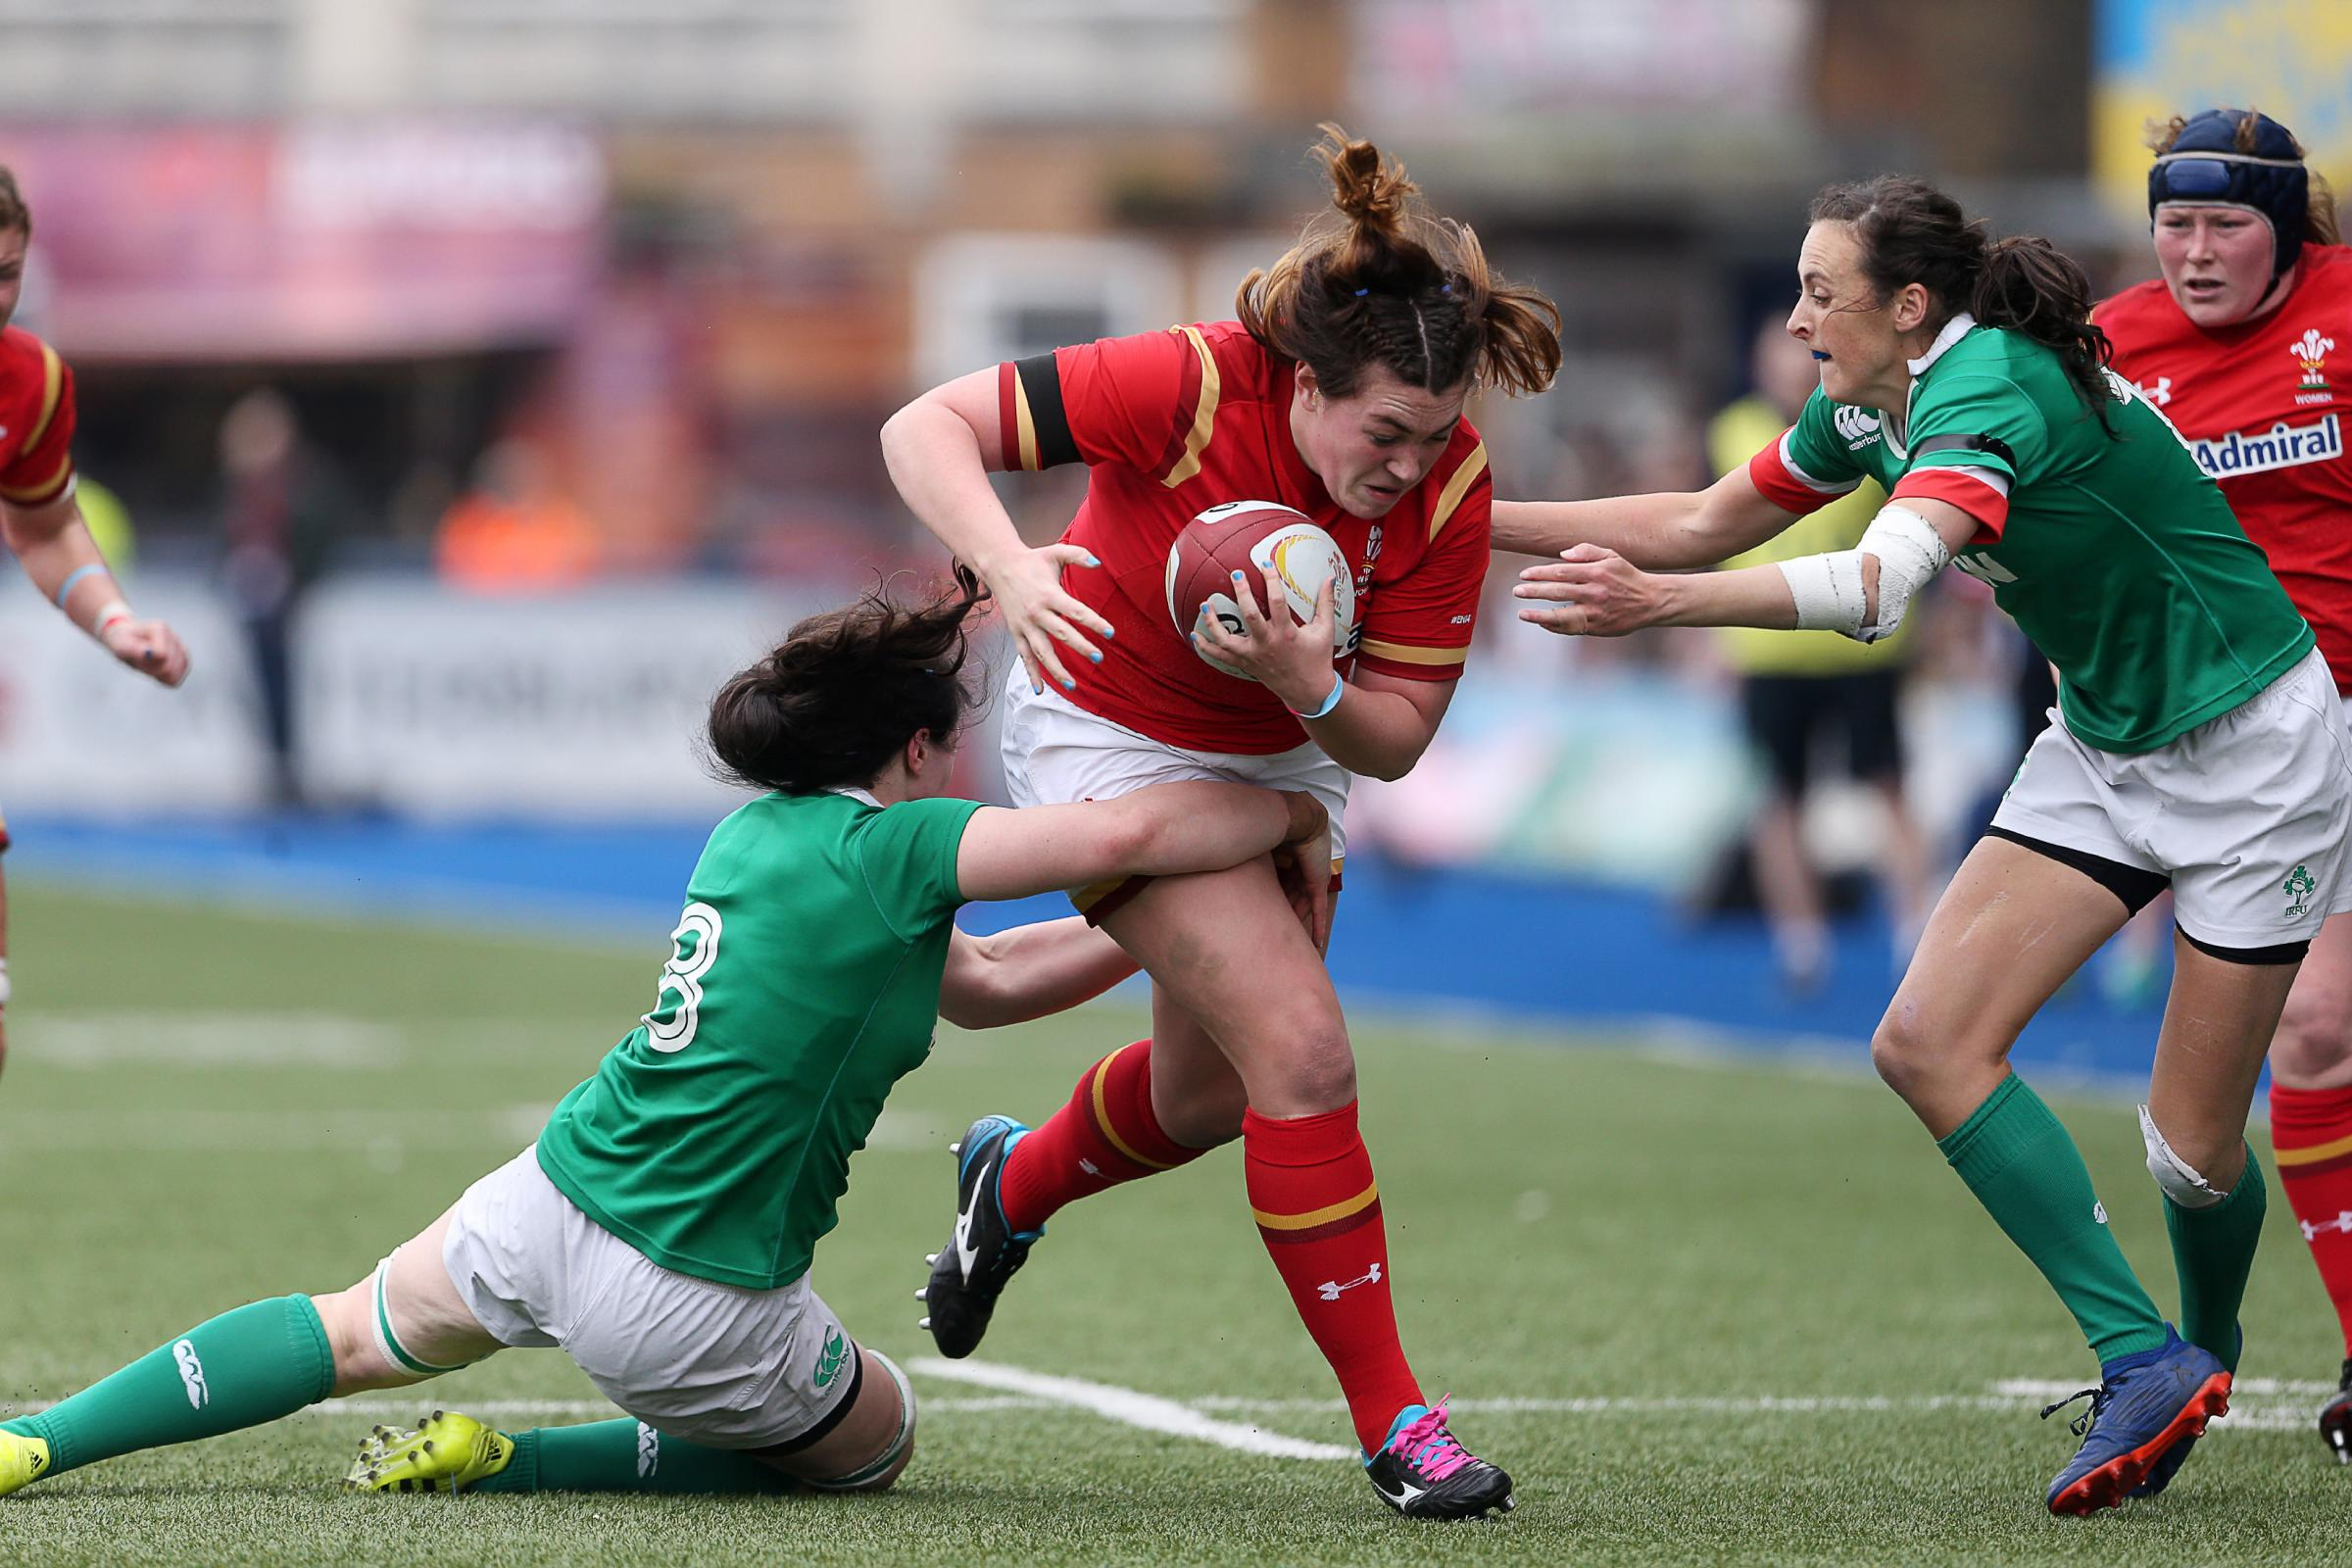 TOP PROP: Dragons forward Cerys Hale has been selected for Wales